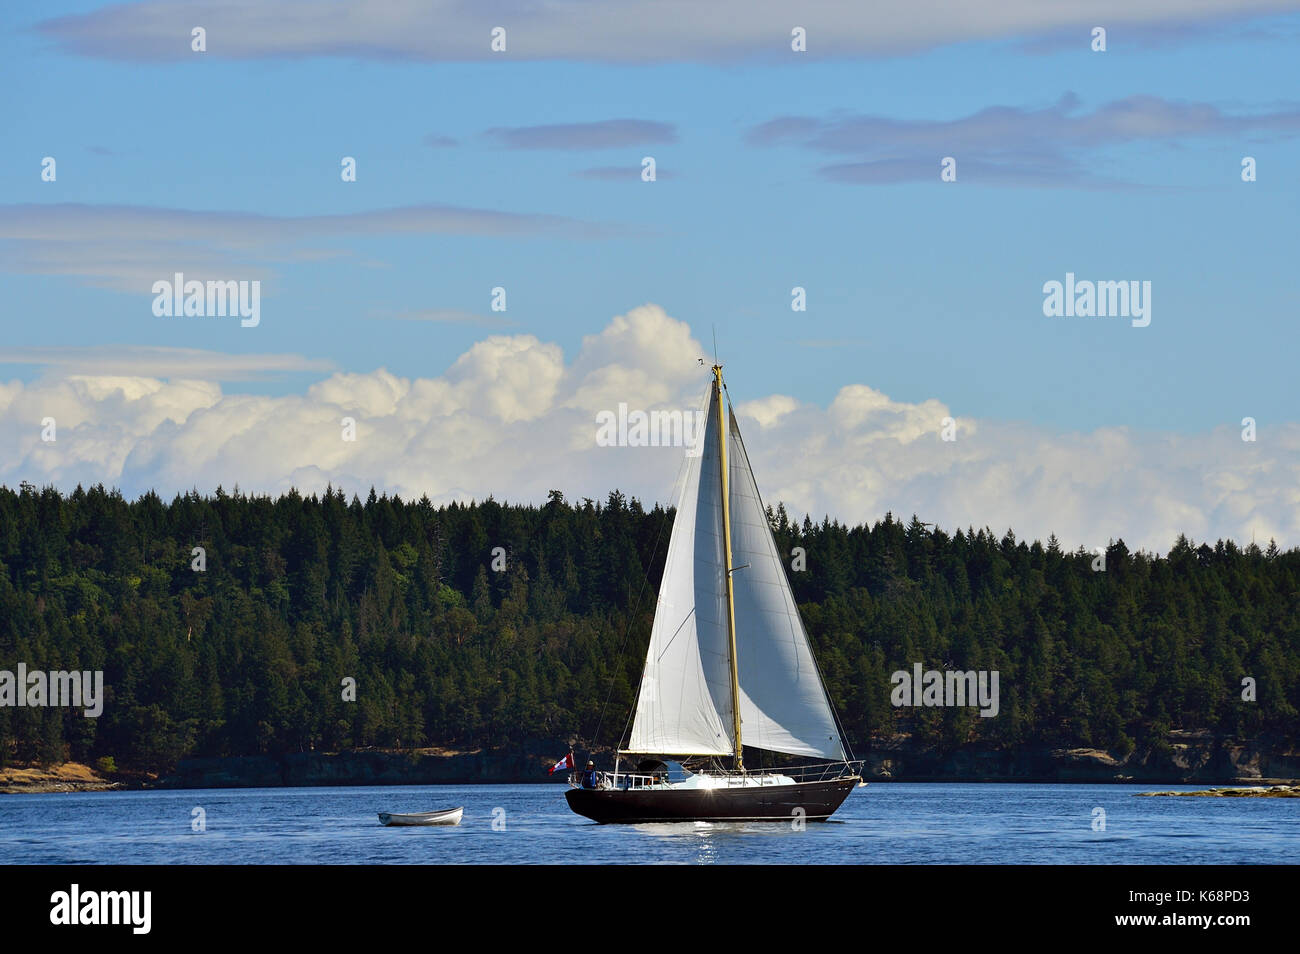 A sail boat glides through the calm waters of the Strait of Georgia near Vancouver Island British Columbia Canada. - Stock Image